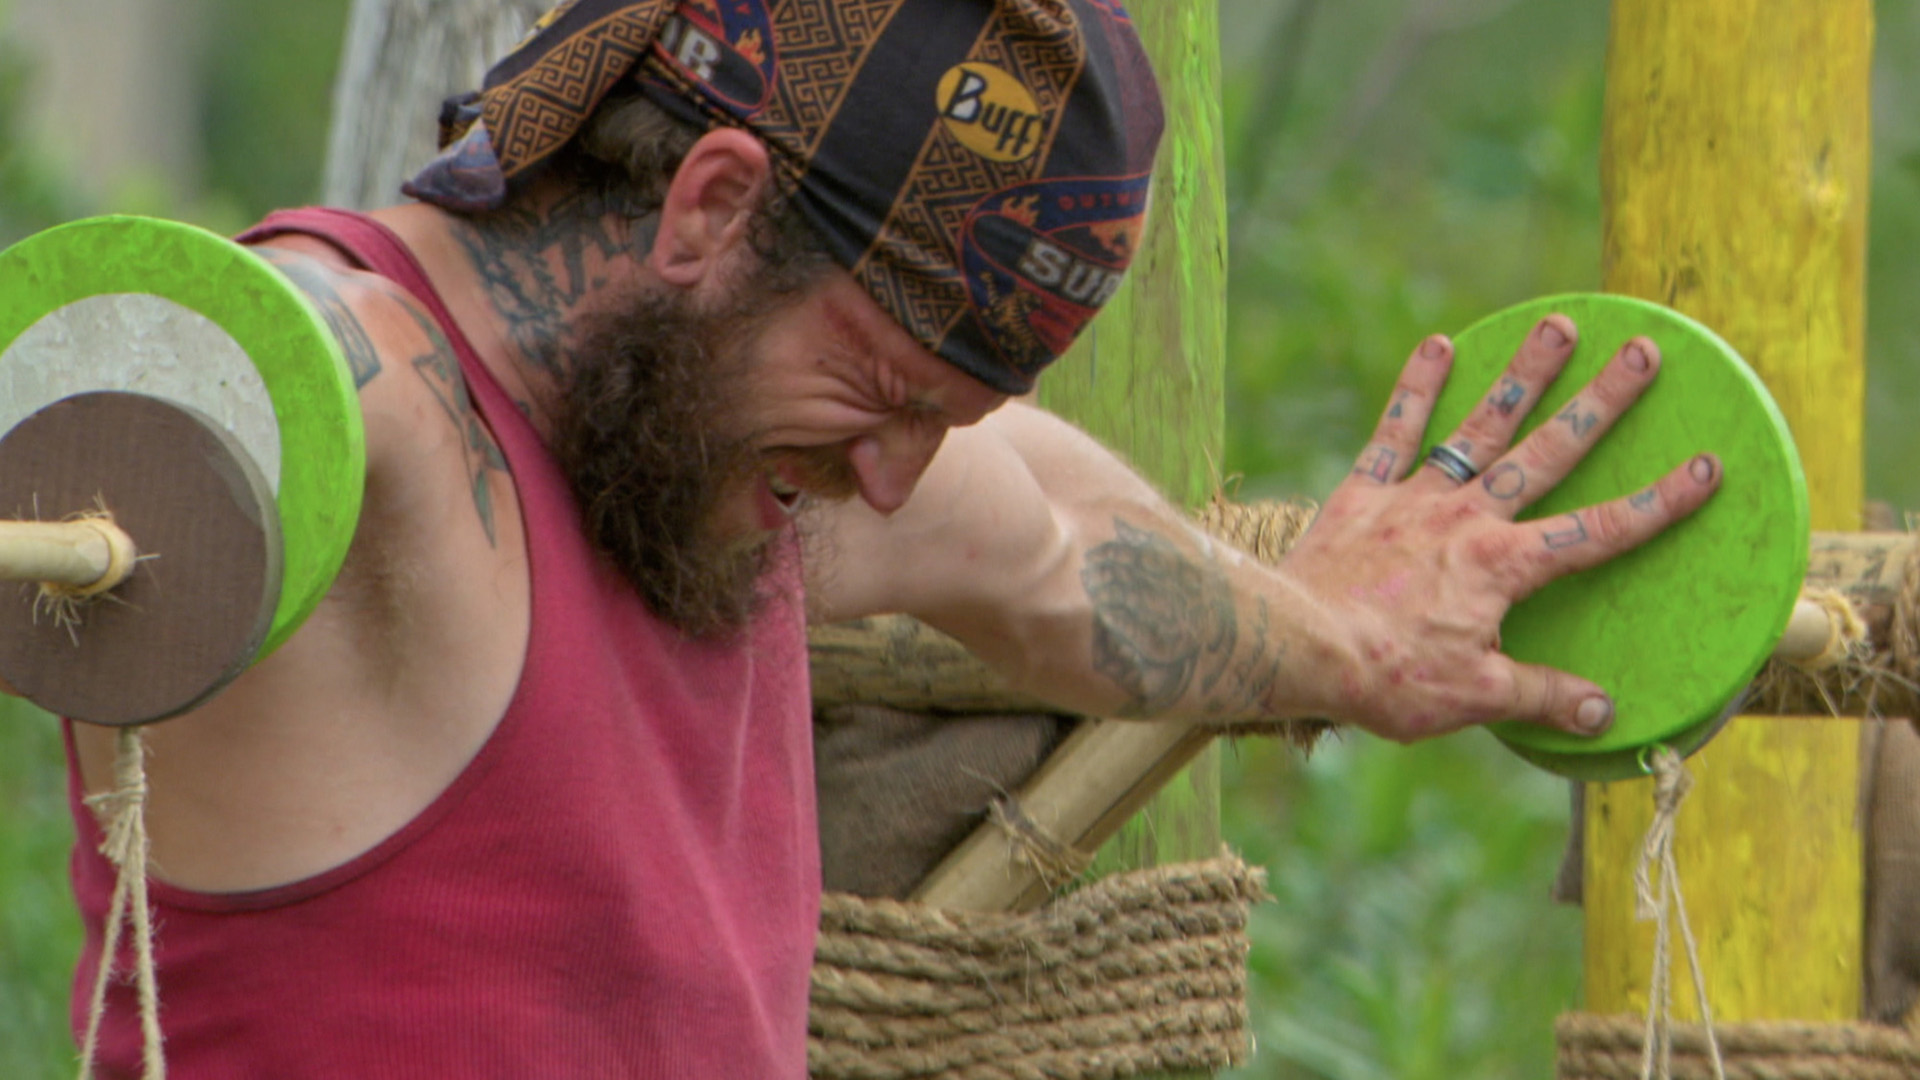 Episode 10: Jason experiences agonizing pain during a brutal Immunity Challenge.